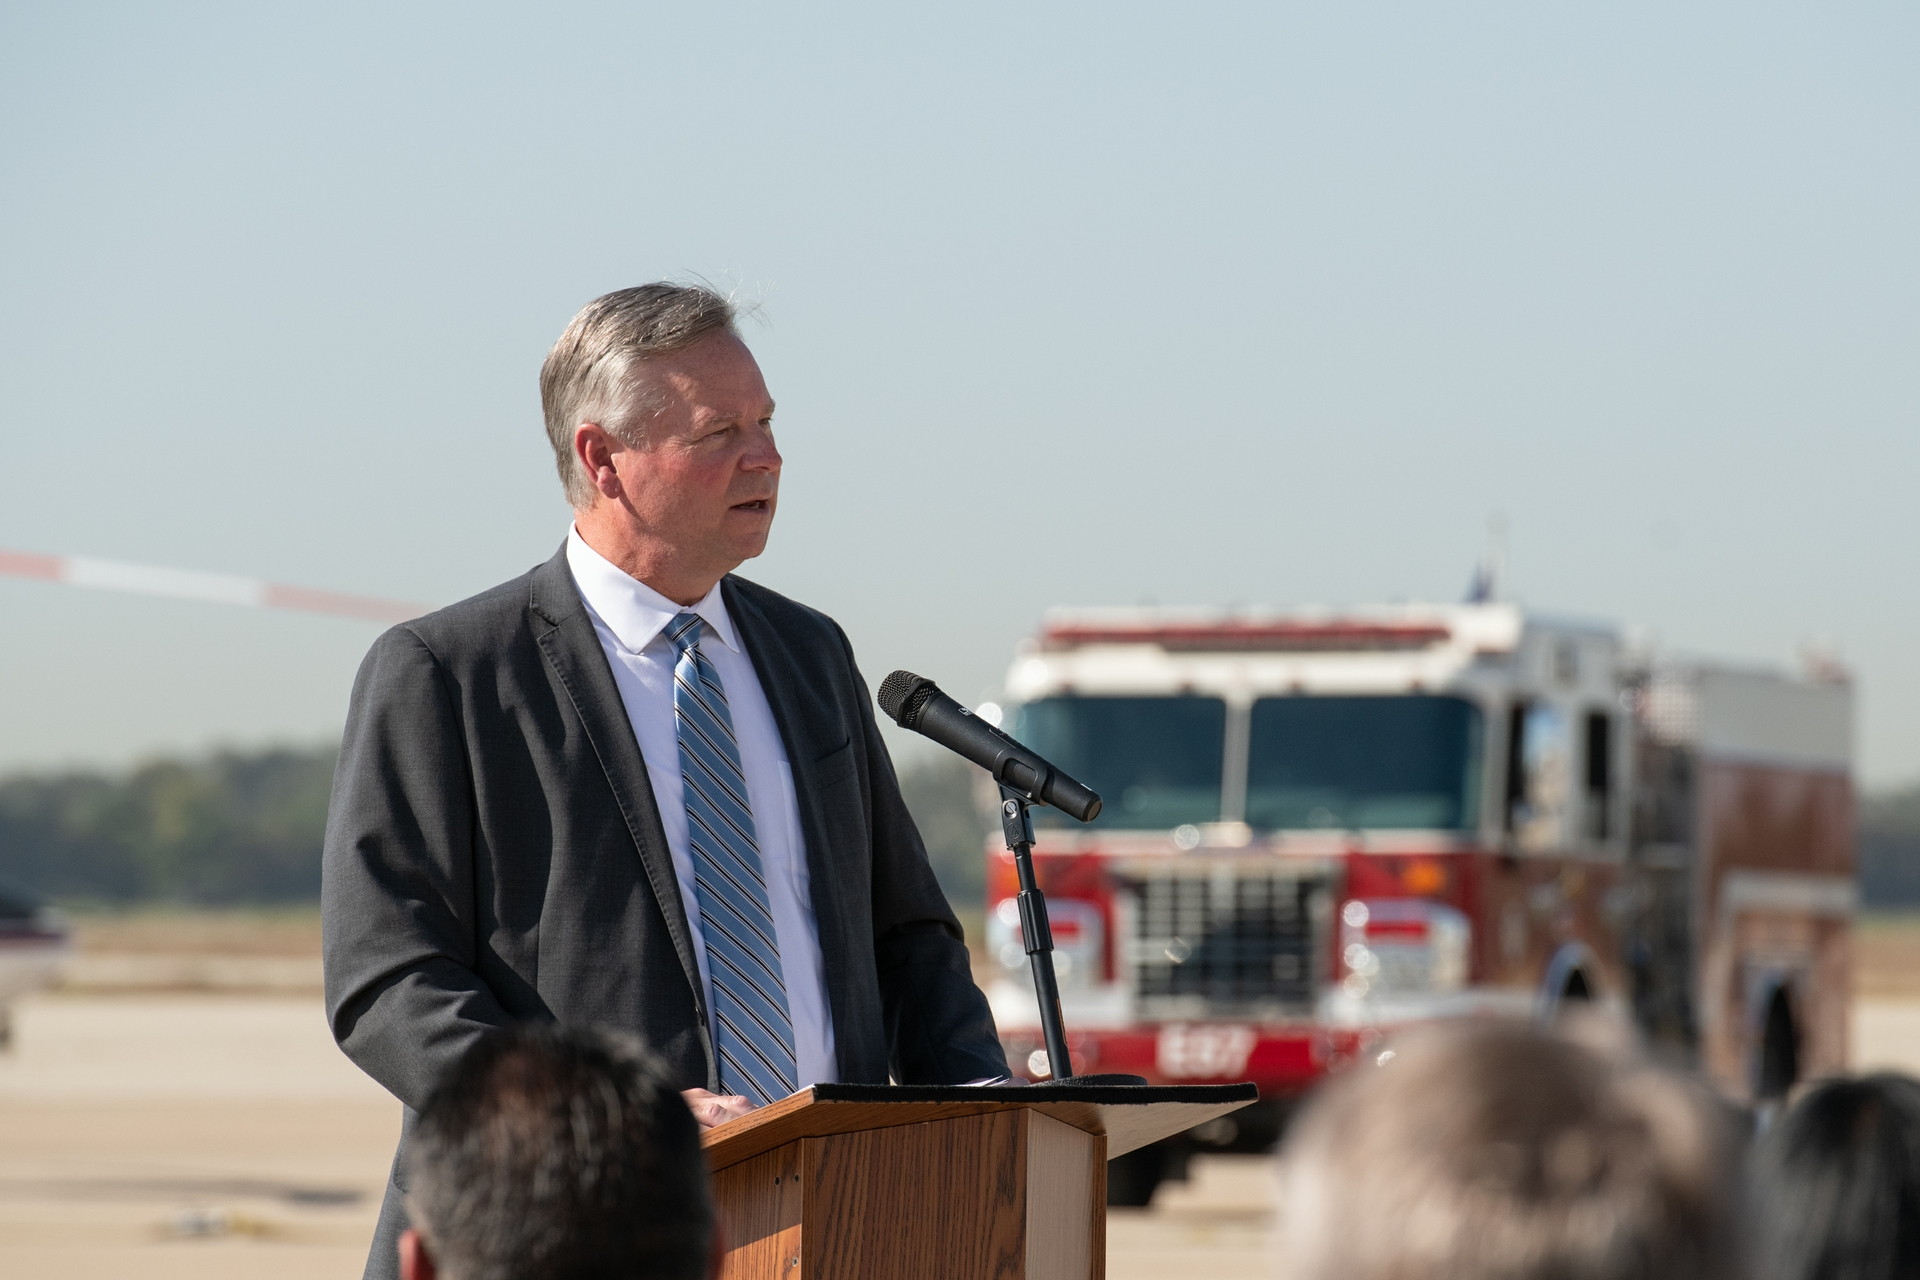 """""""There is no higher priority for us than the safety of our customers, the communities we serve, our employees and contractors, and the firefighters and first responders who protect them,"""" said Kevin M. Payne, SCE president and CEO."""